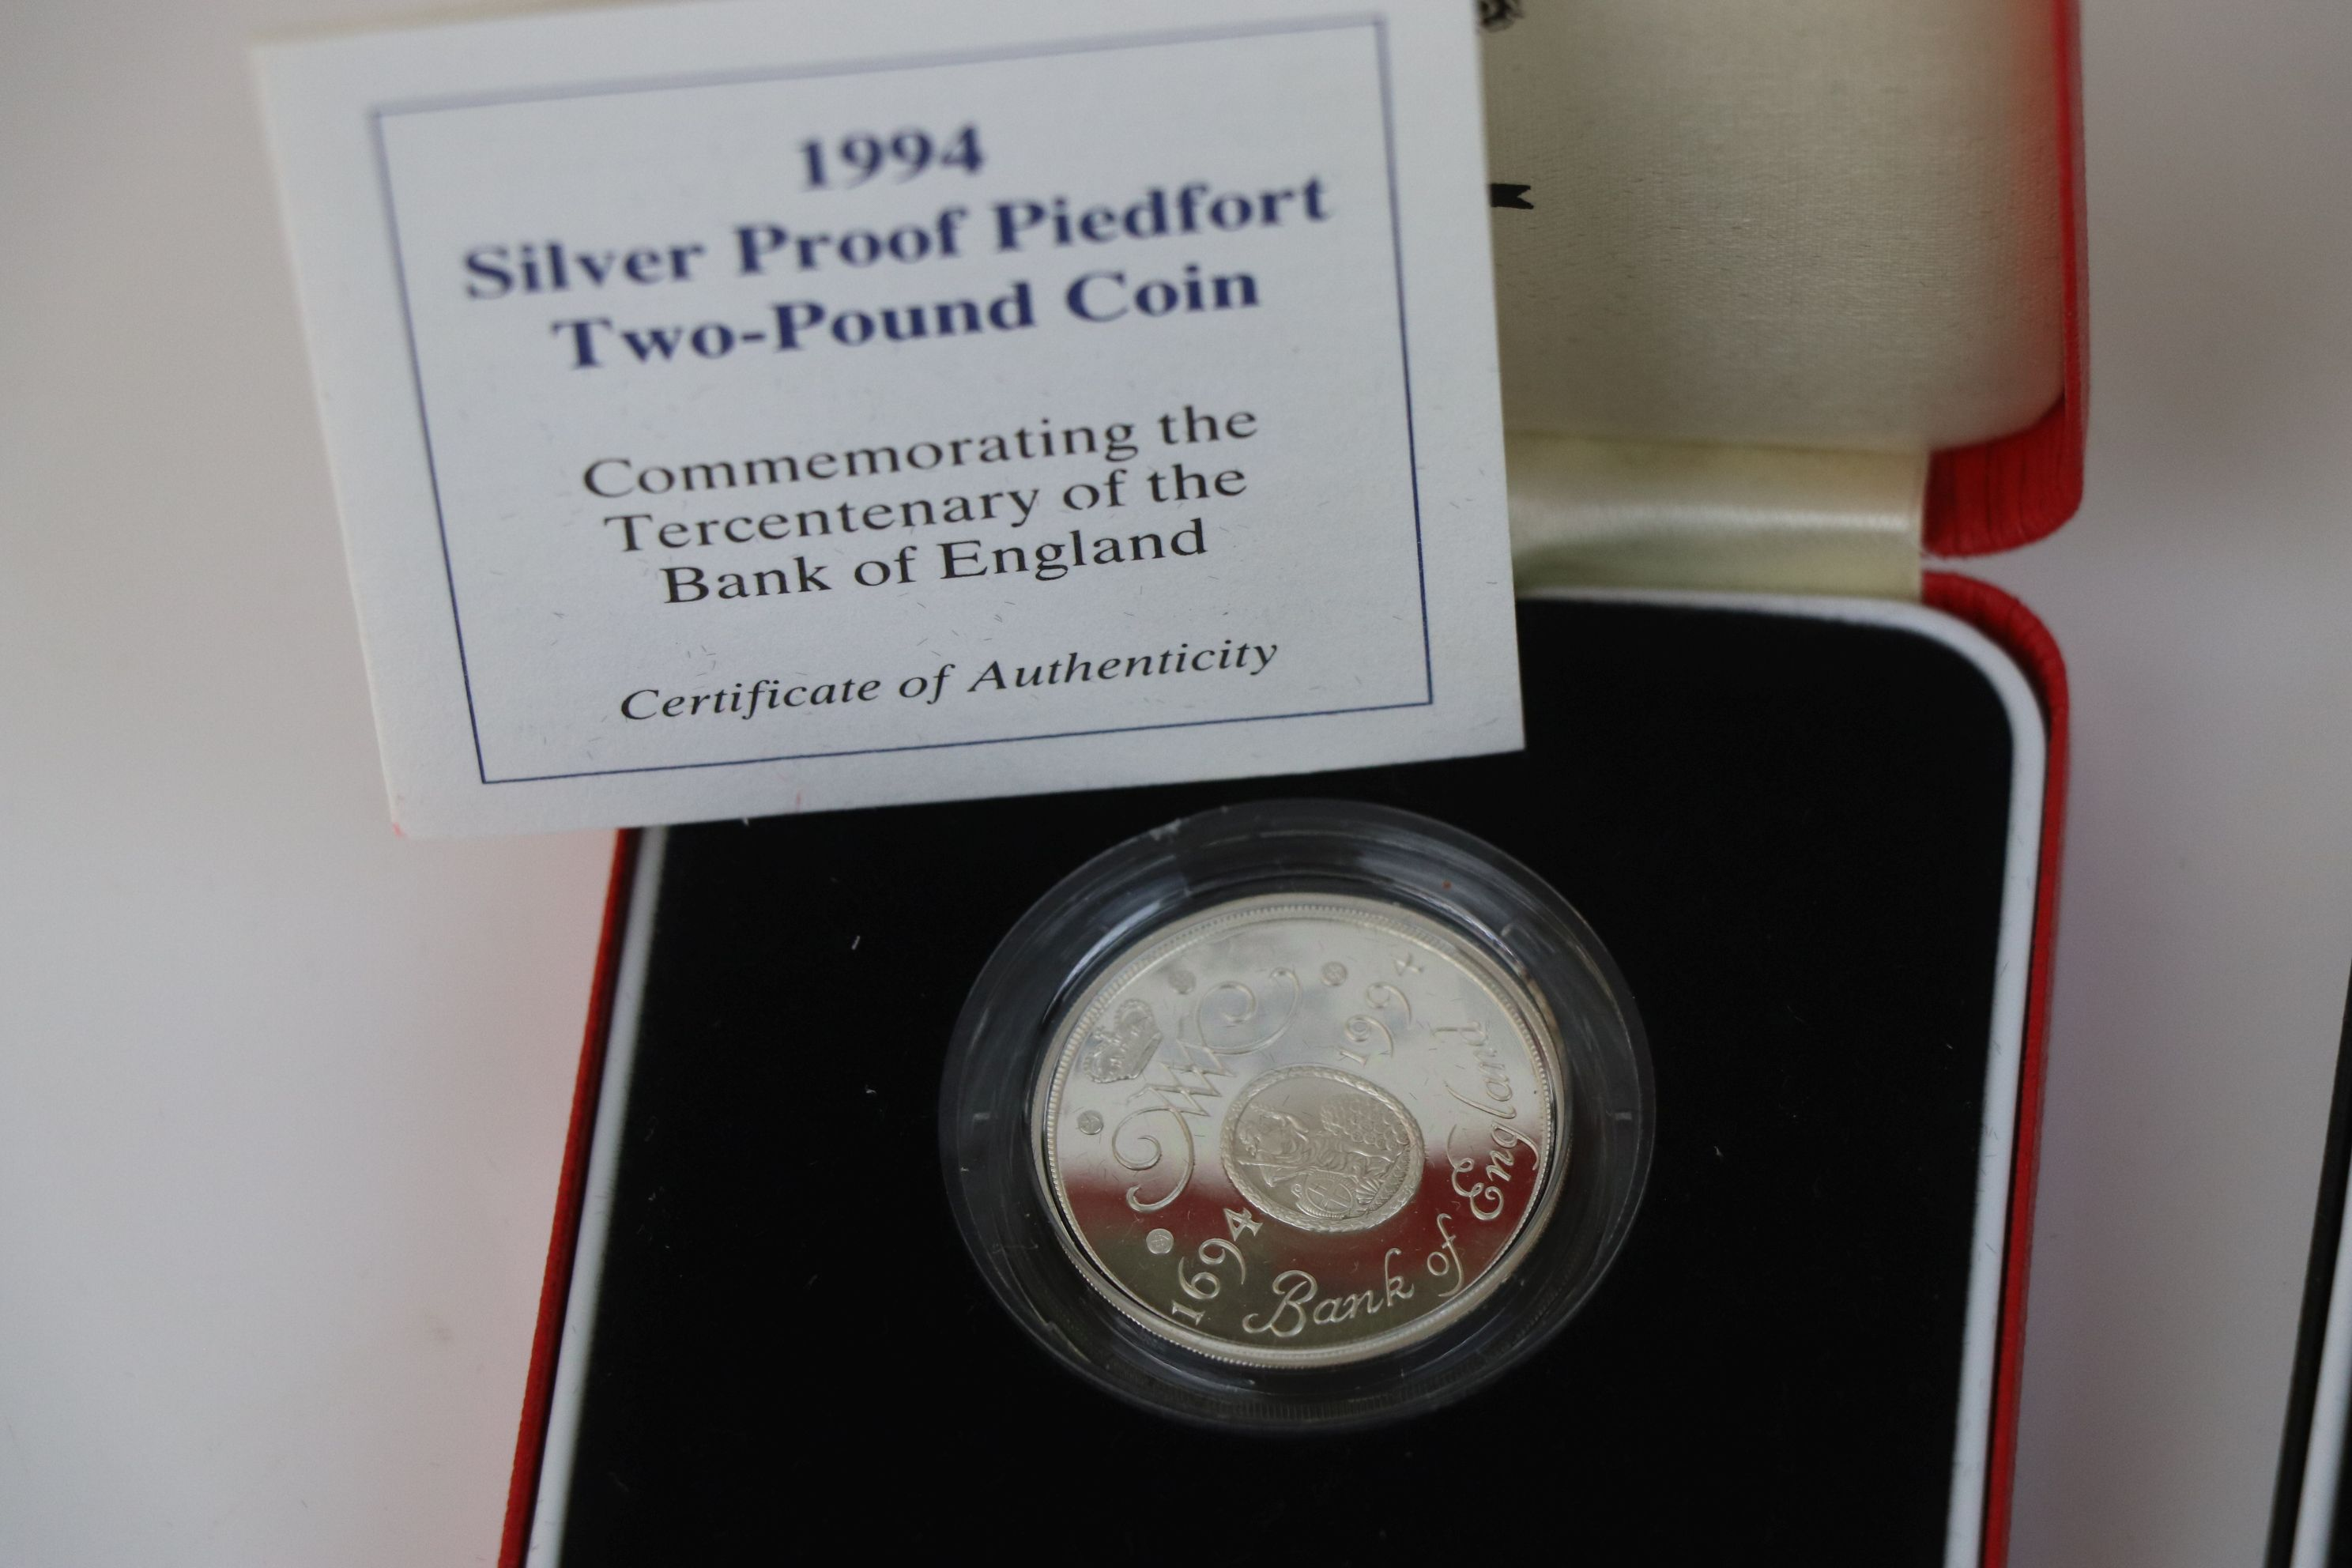 A cased Royal Mint 1994 silver proof Piedfort £2 coin commemorating the Tercentenary of the Bank - Image 3 of 5